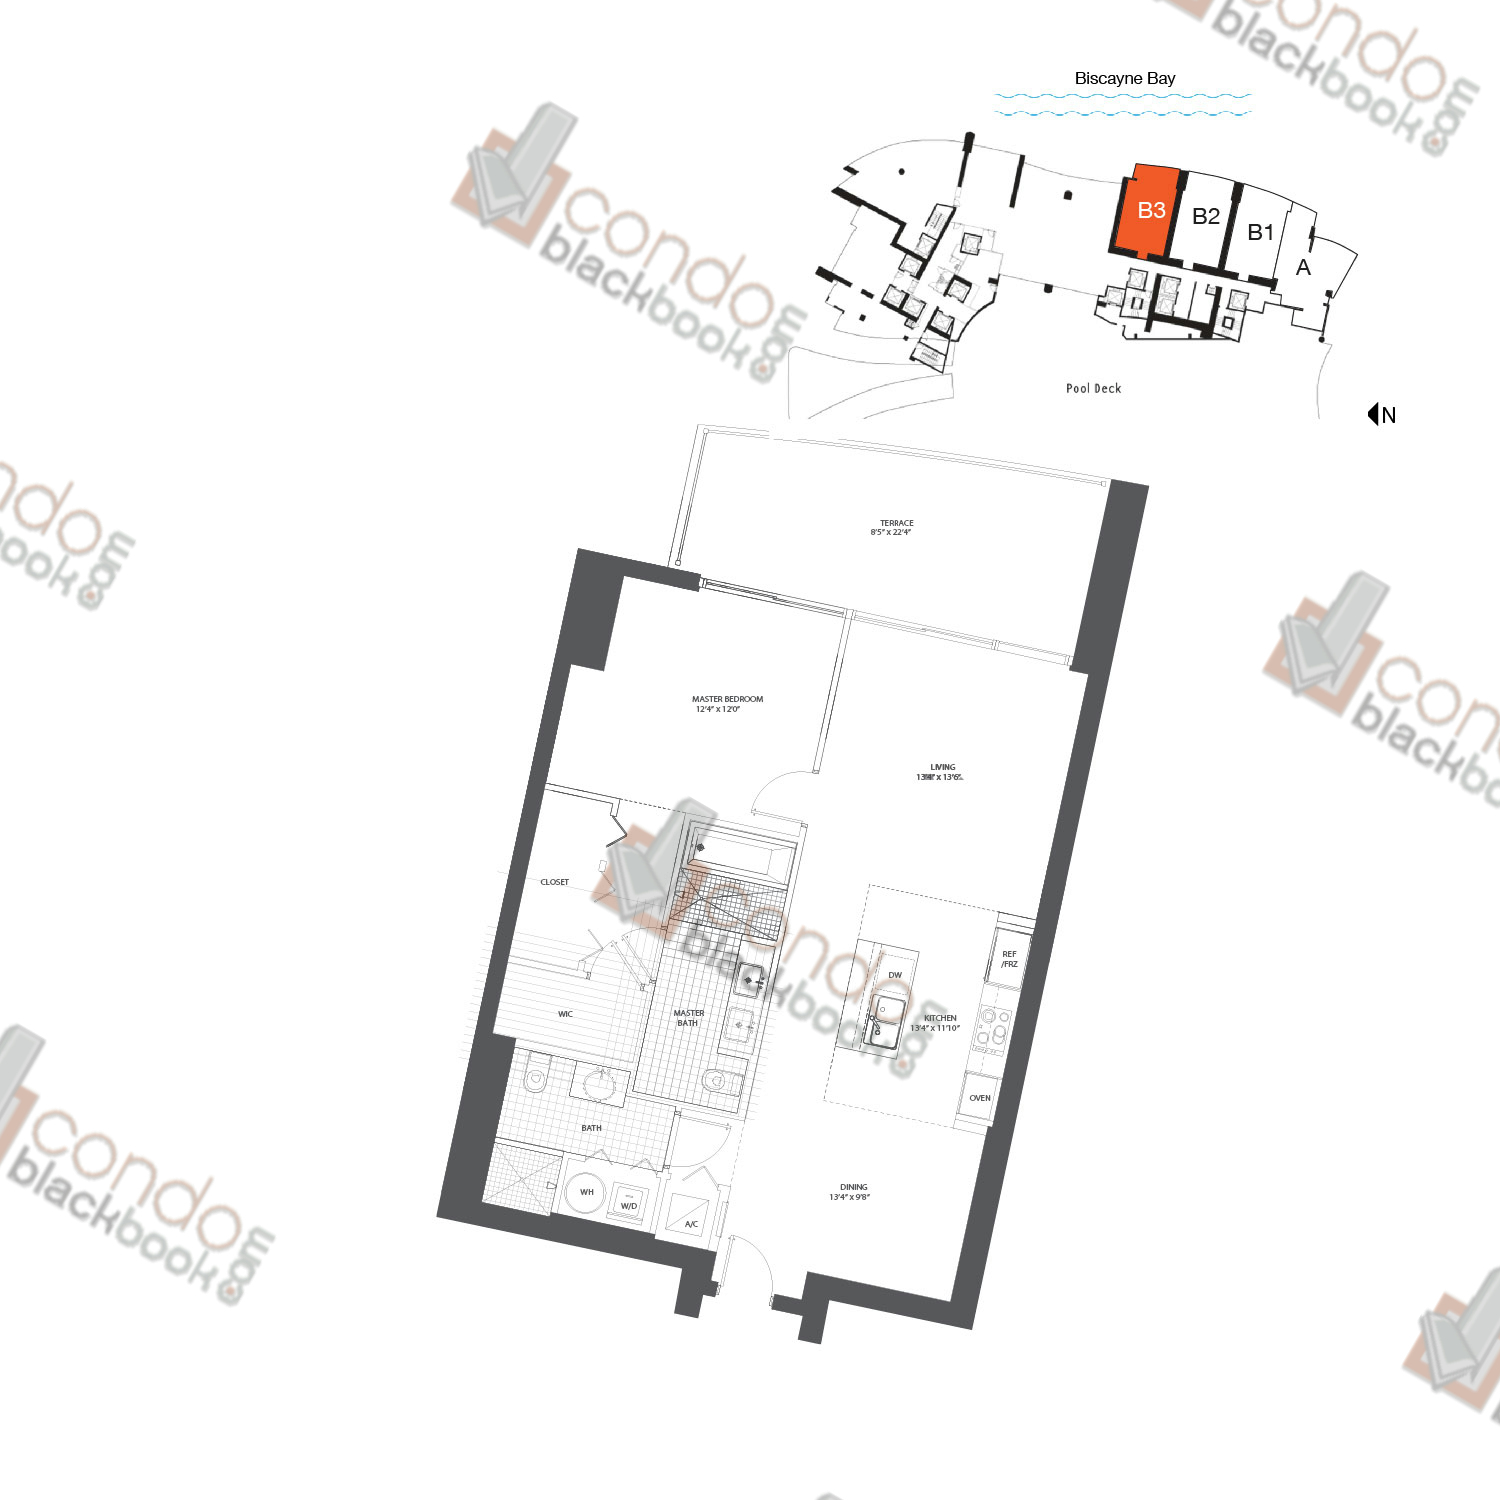 Floor plan for 900 Biscayne Bay Downtown Miami Miami, model FLAT B3, line 07, 1/1.5 bedrooms, 958 sq ft